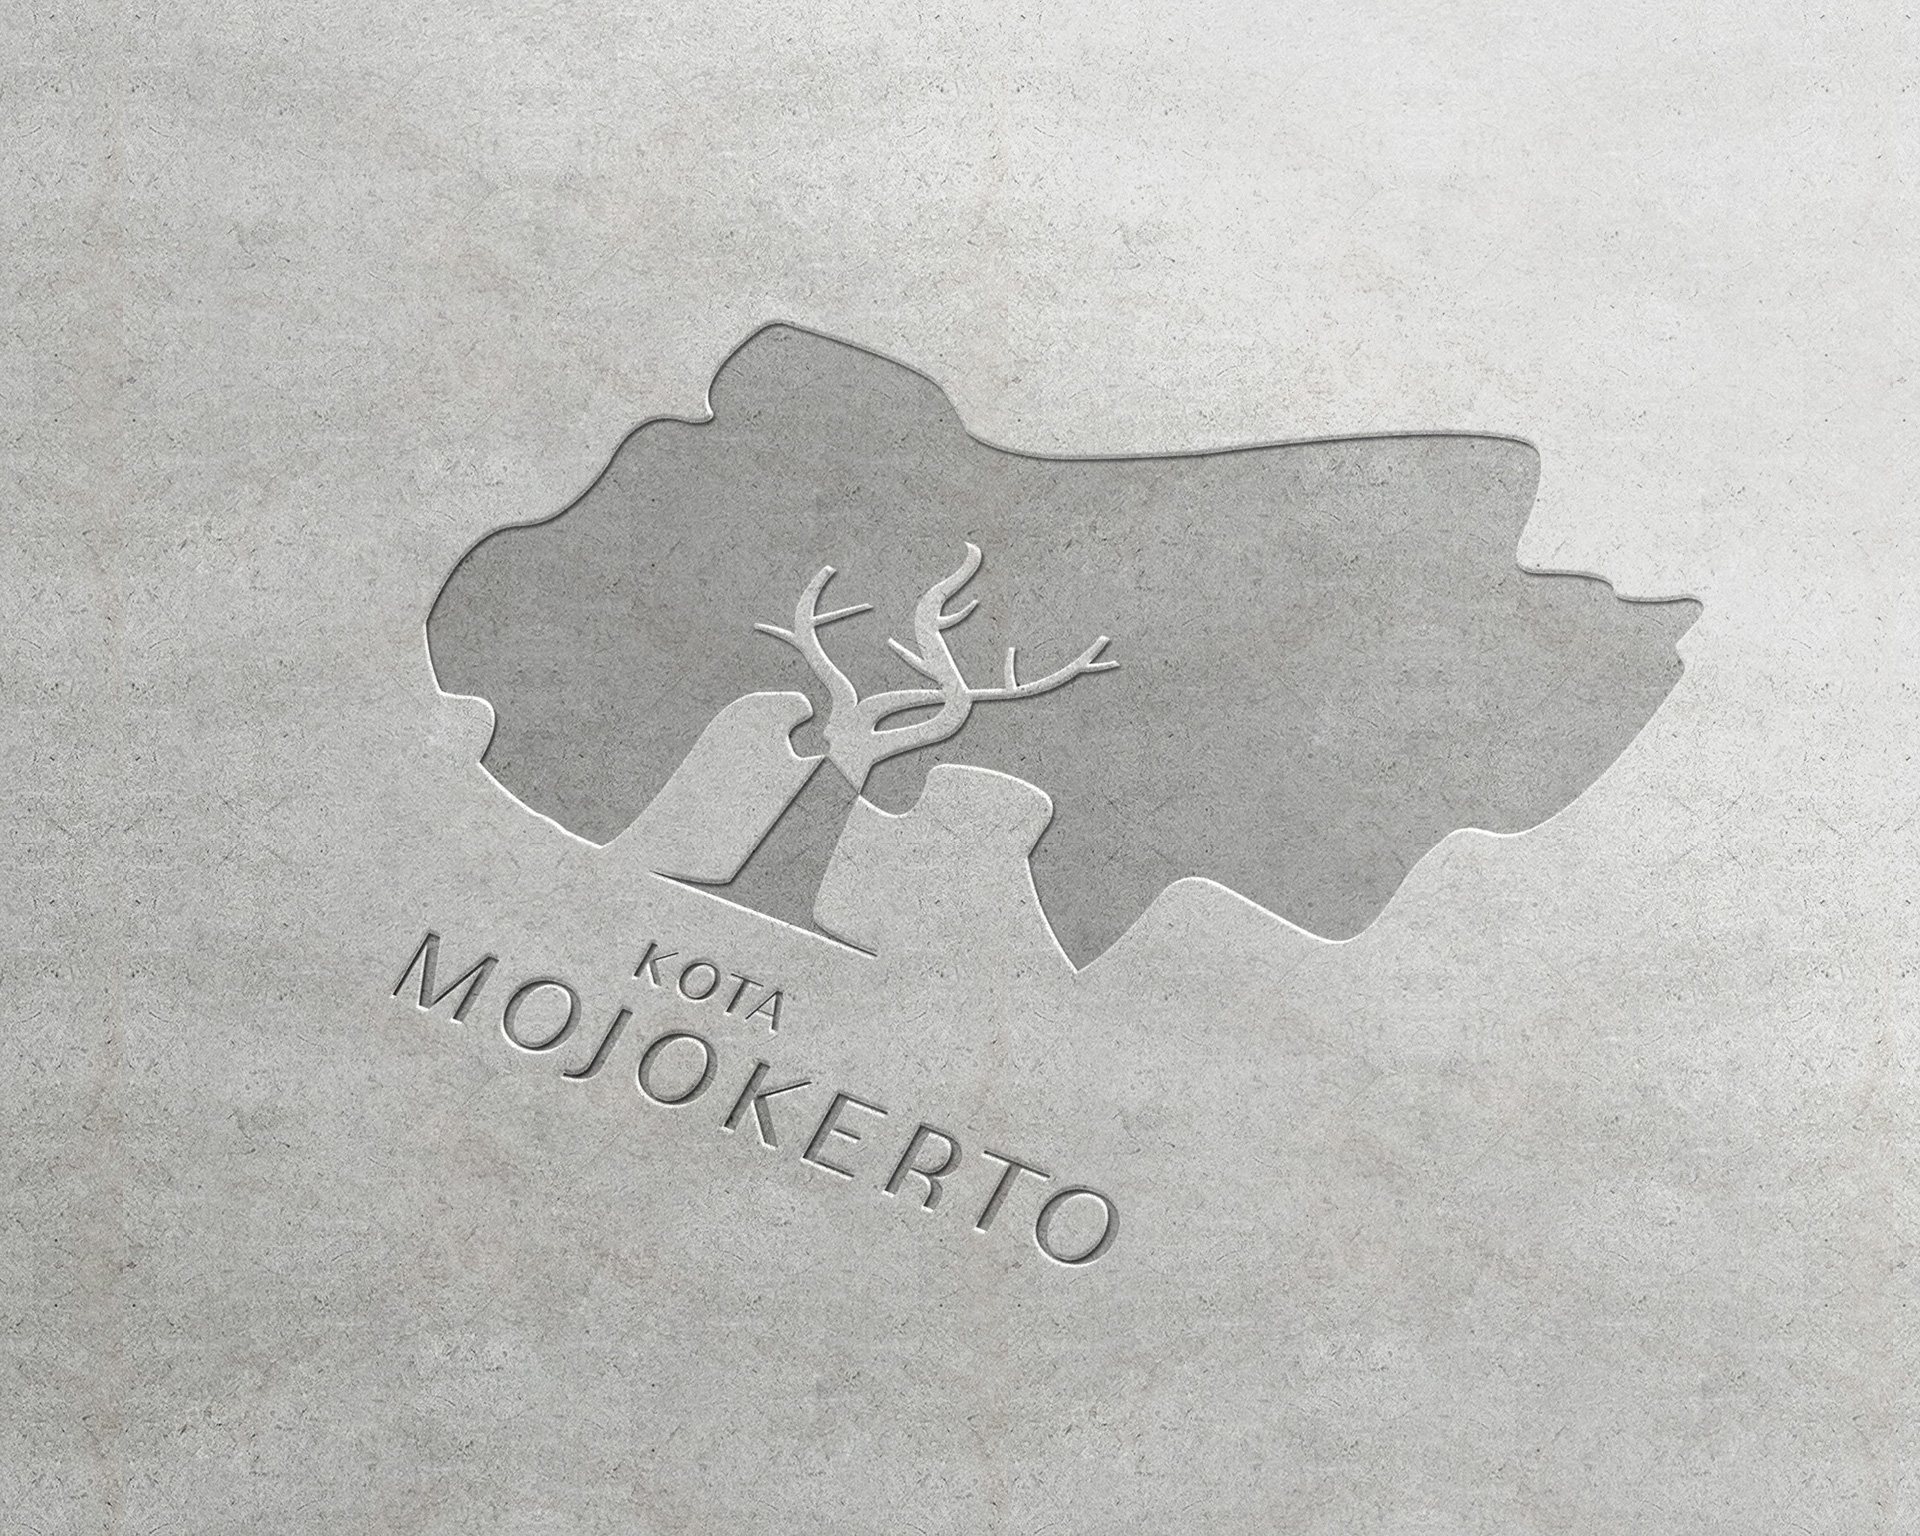 City Logo Redesign Mojokerto City Indonesia On Behance